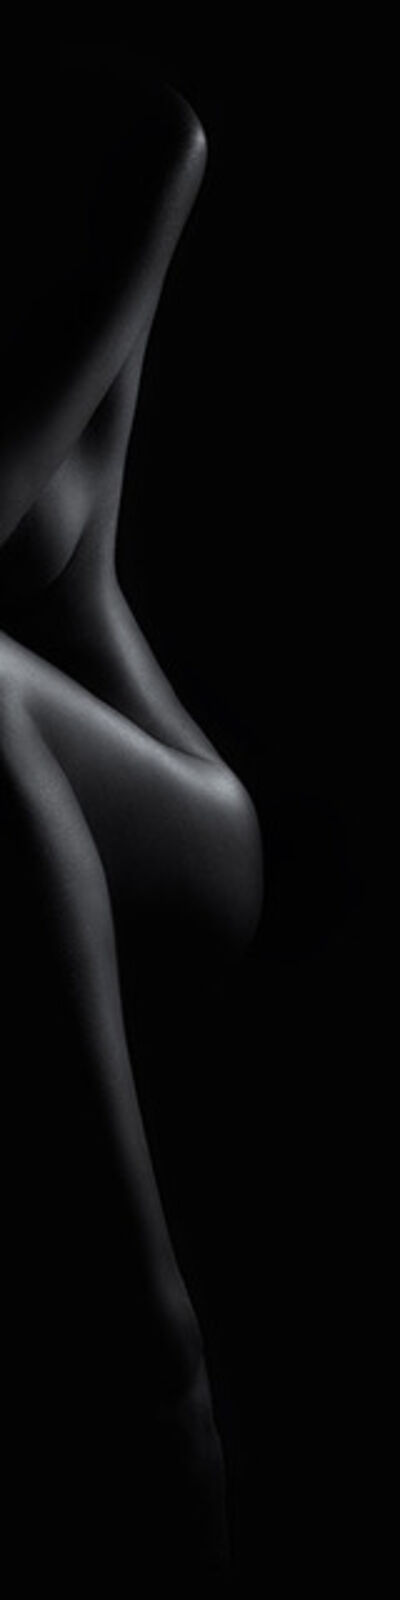 Jean Huang, 'Female Bodyscape Sitting Side Series - Female Bodyscape', 2017